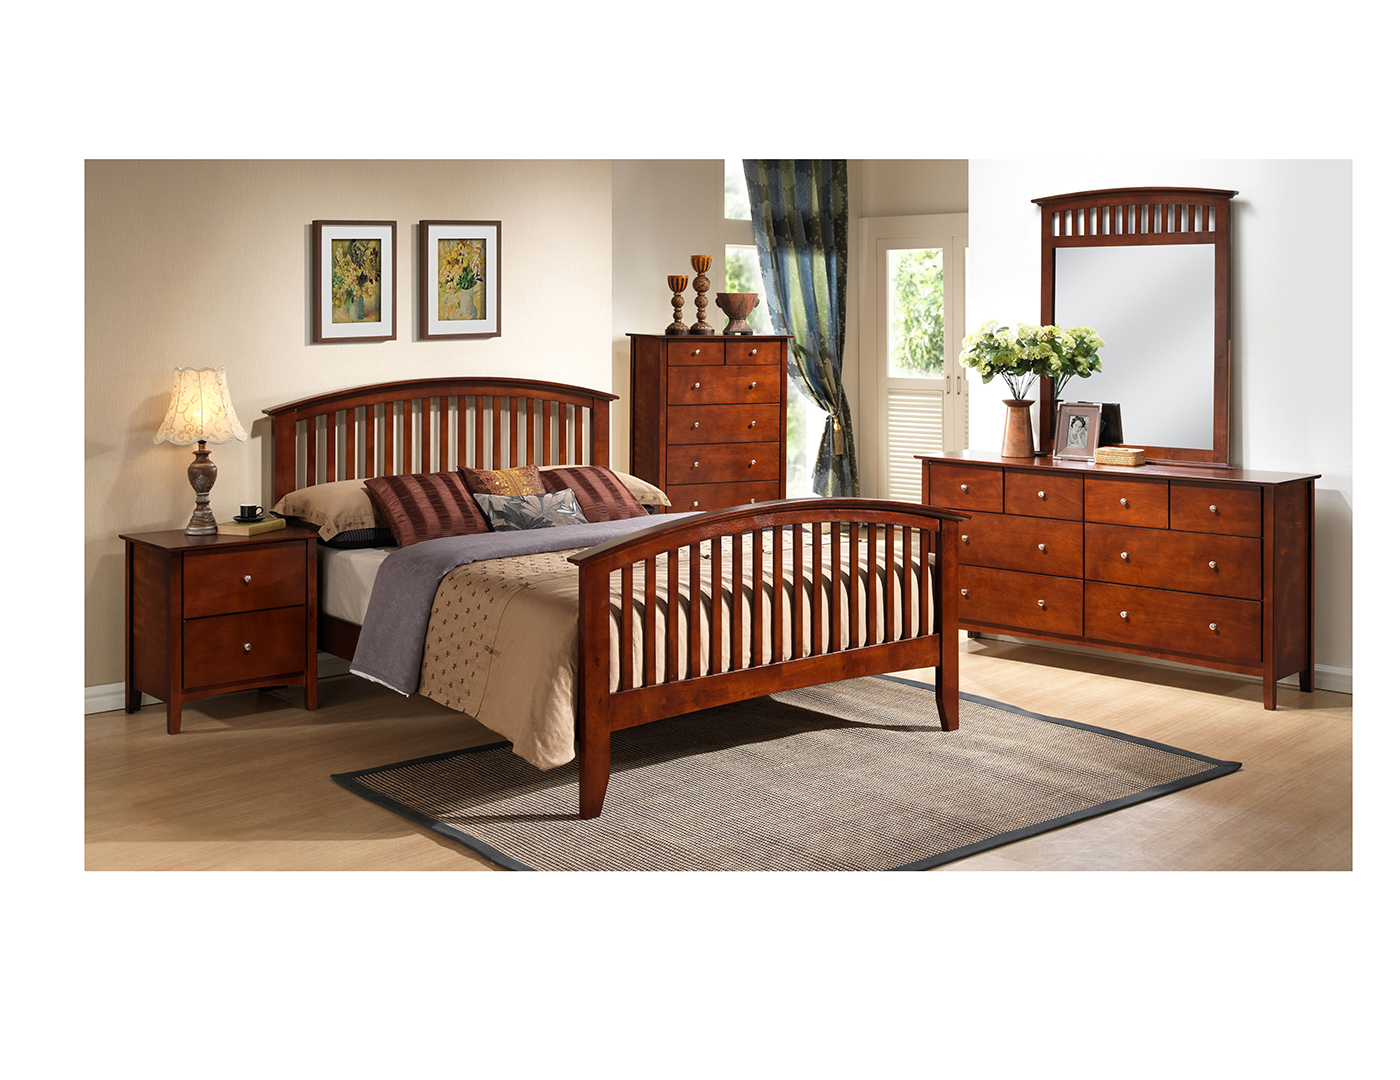 Metro Bedroom Furniture Metro Bedroom Set In White Wenge Dcg Stores Metro Bedroom Set J M